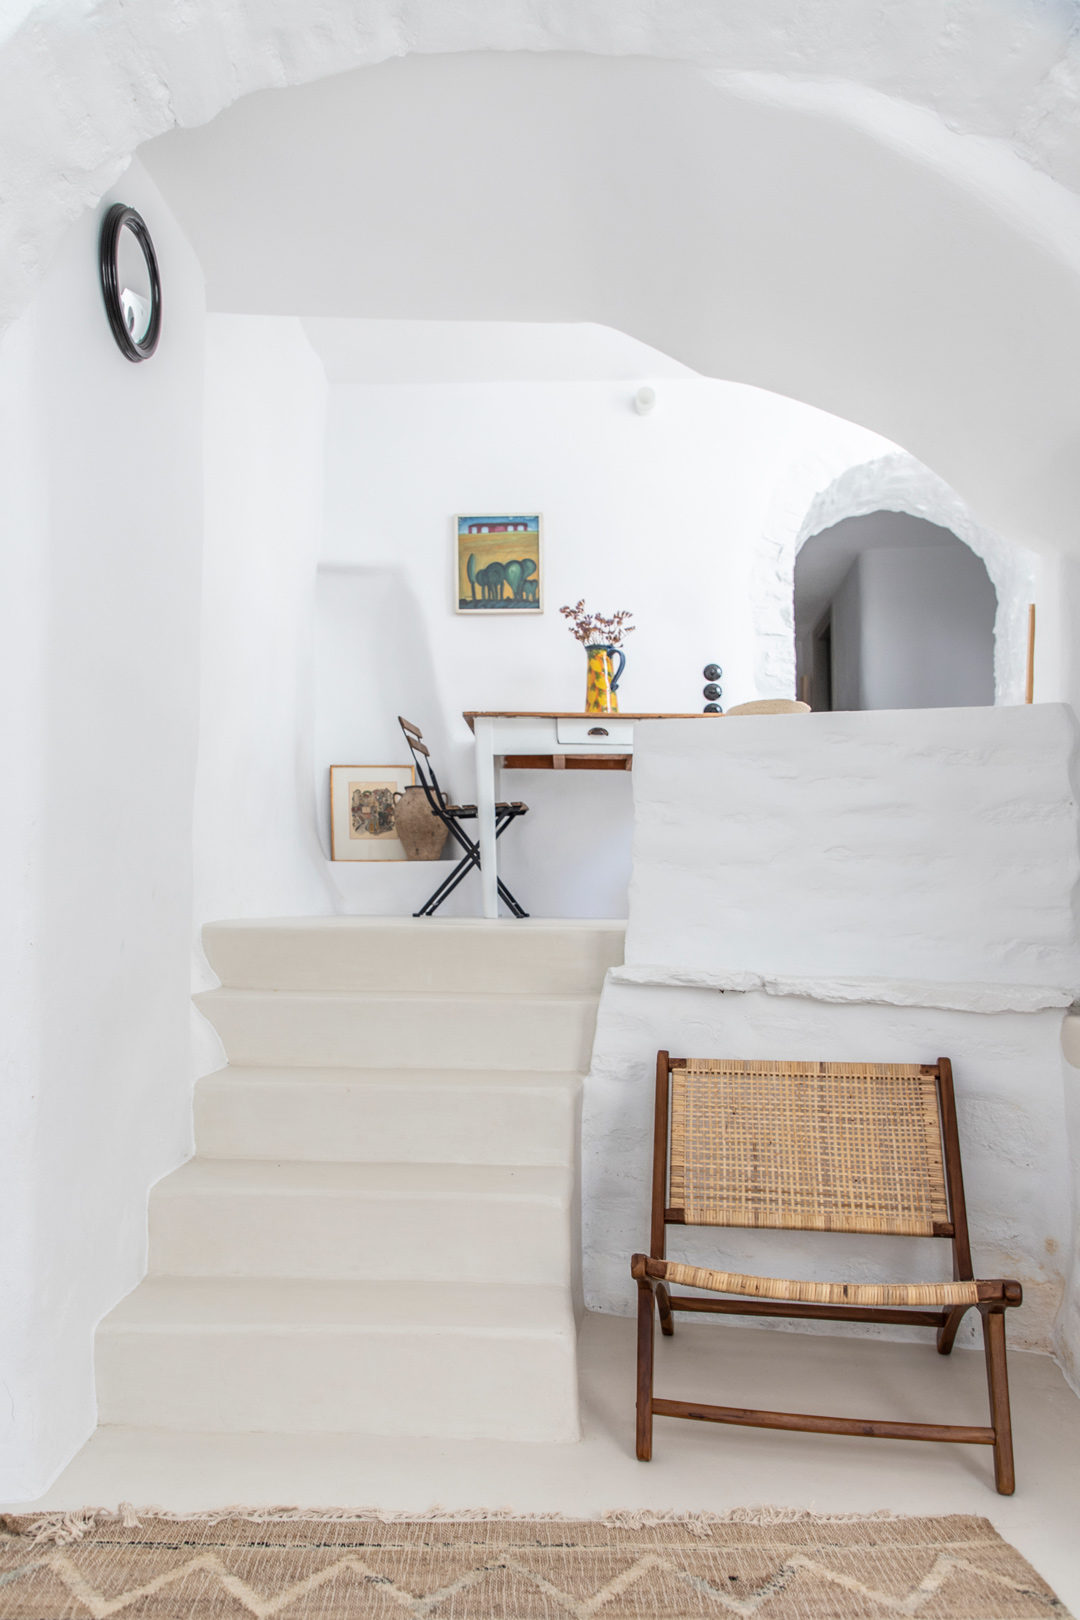 Ozon – Private house in Tinos